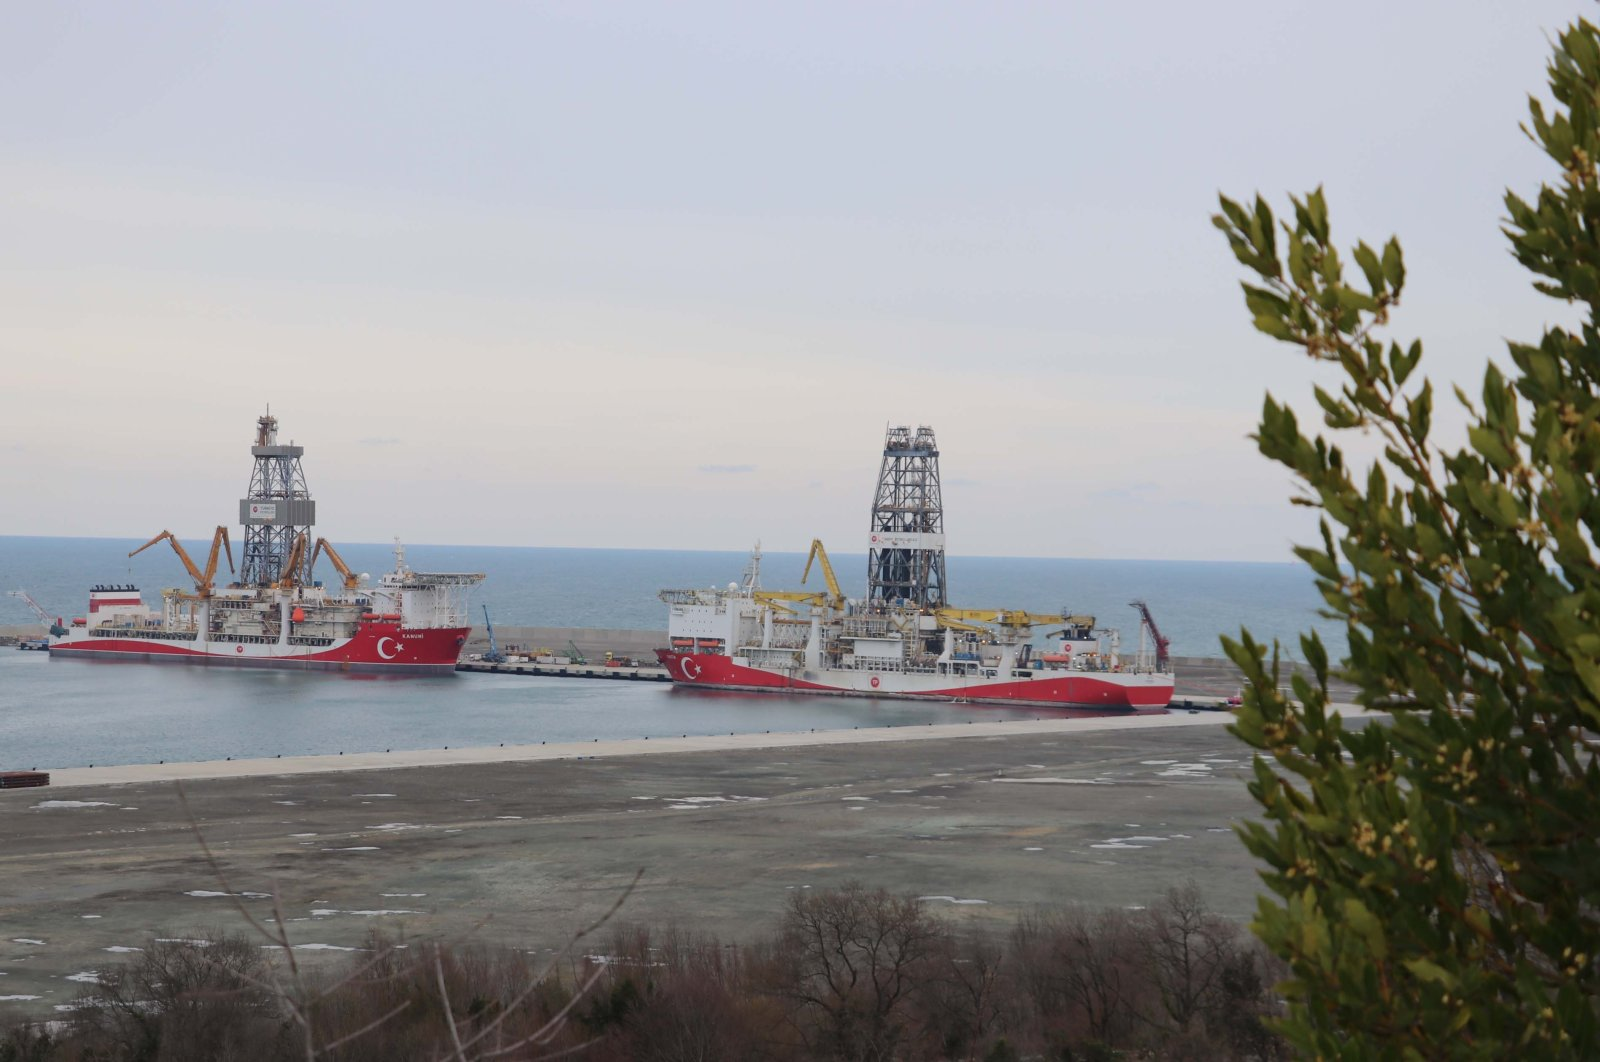 Turkey's drilling vessels Kanuni (L) and Fatih at the Port of Filyos in Zonguldak, northern Turkey, March, 20, 2021. (AAPhoto)